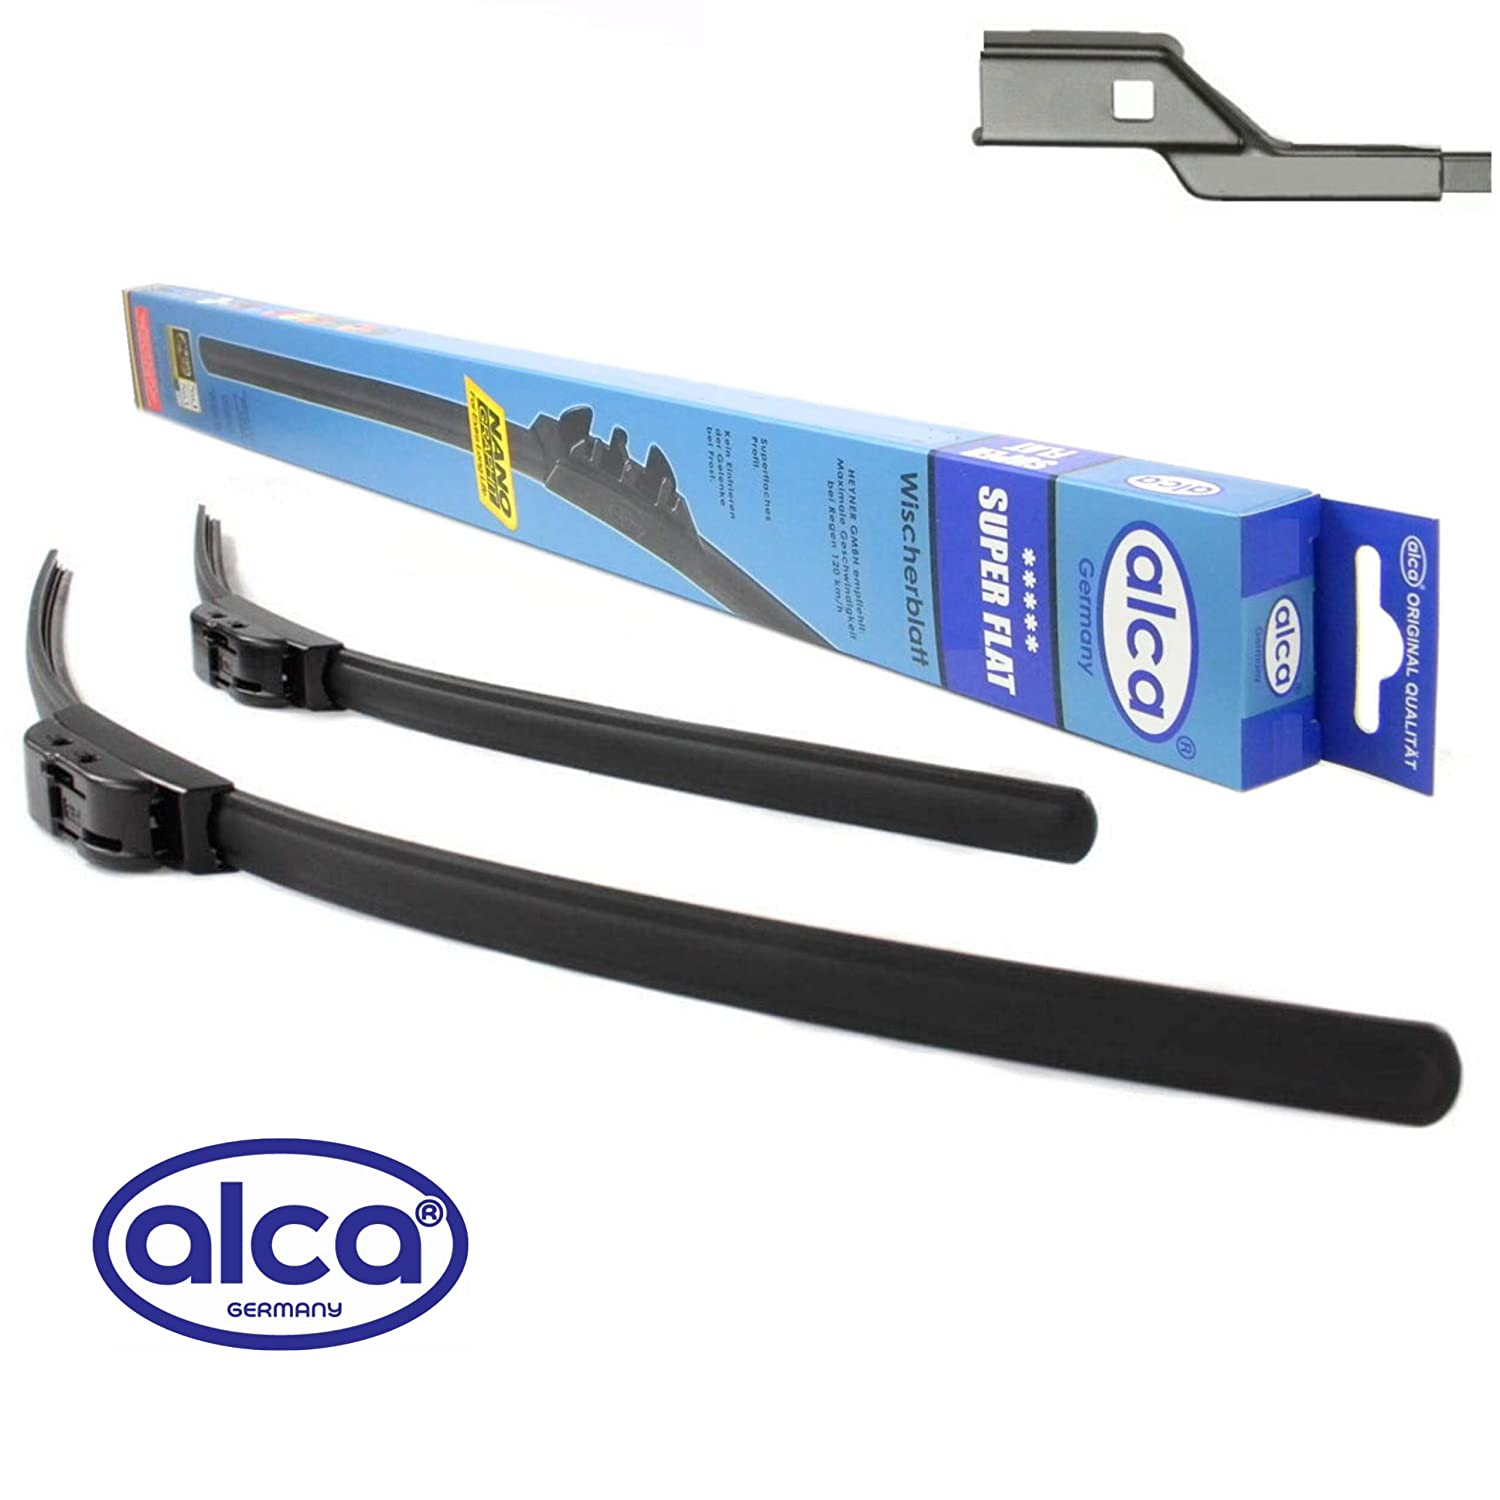 Polo 2009-2016 Alca Germany Set Front Windscreen Wiper Blades Replacement Front Window 2416 ASF2416ST